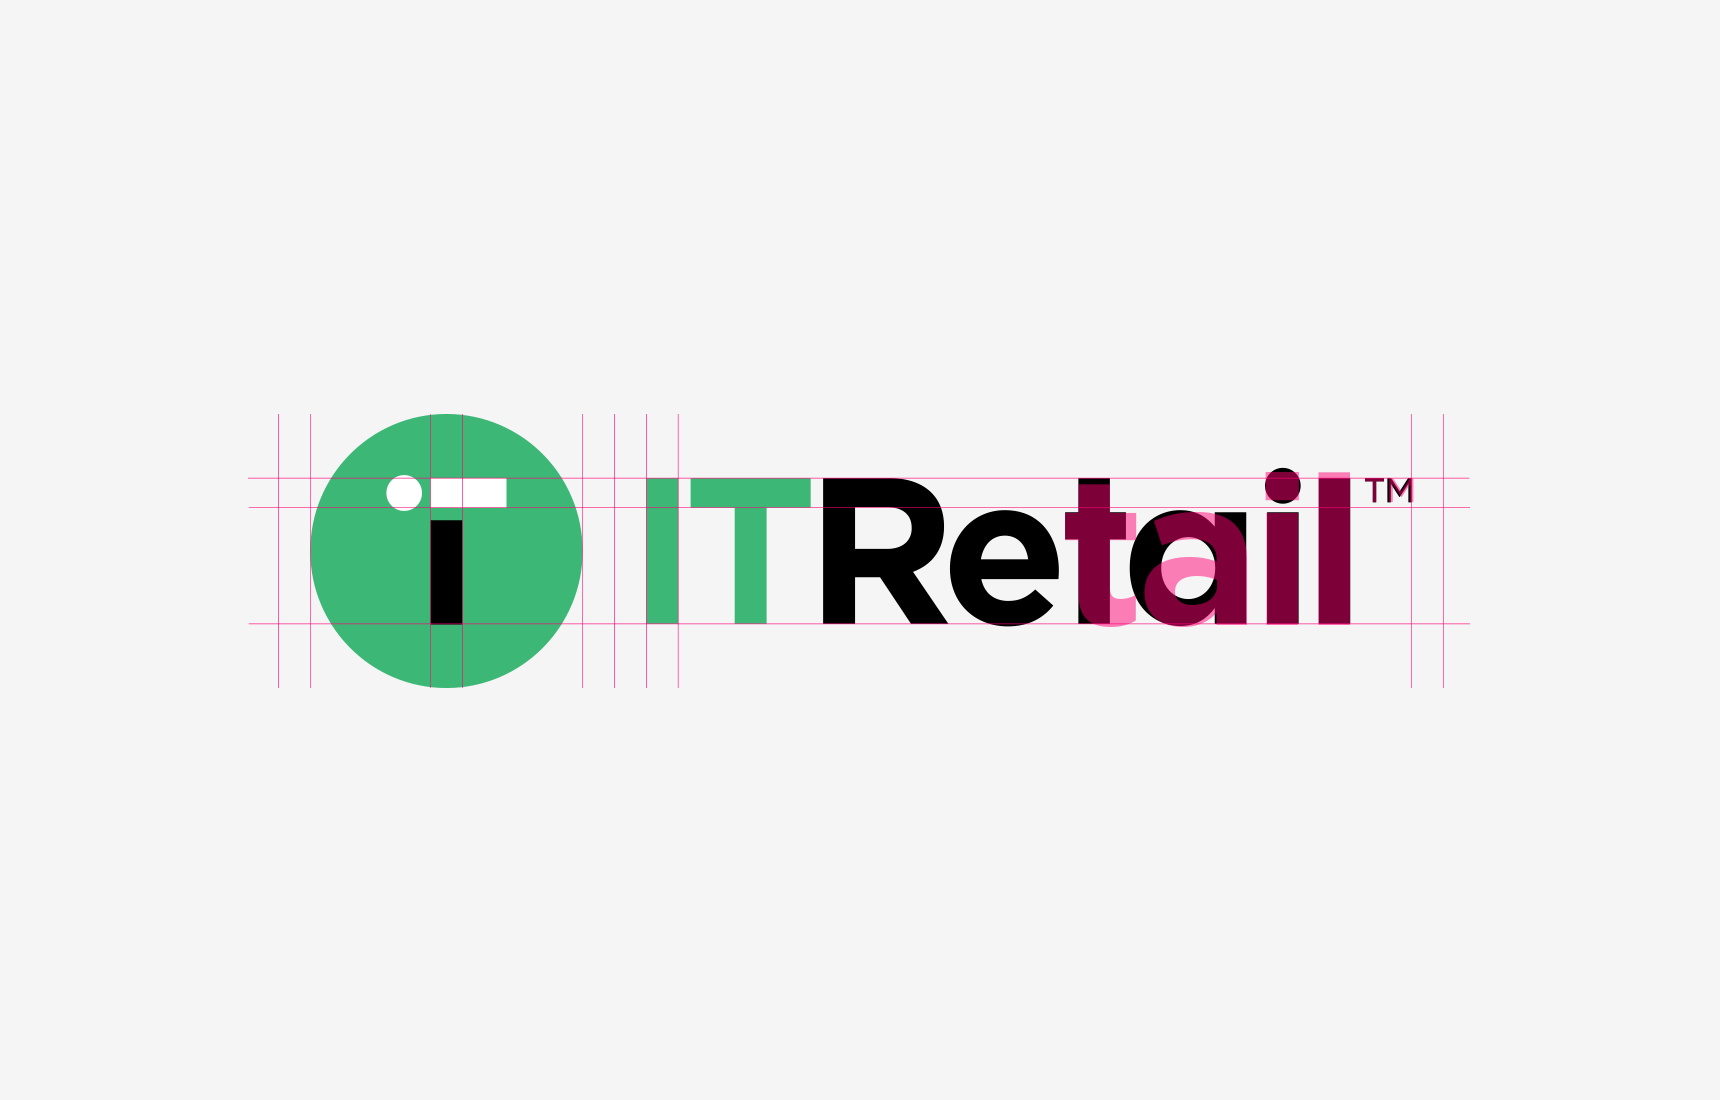 The grid used to design IT Retail's logo.